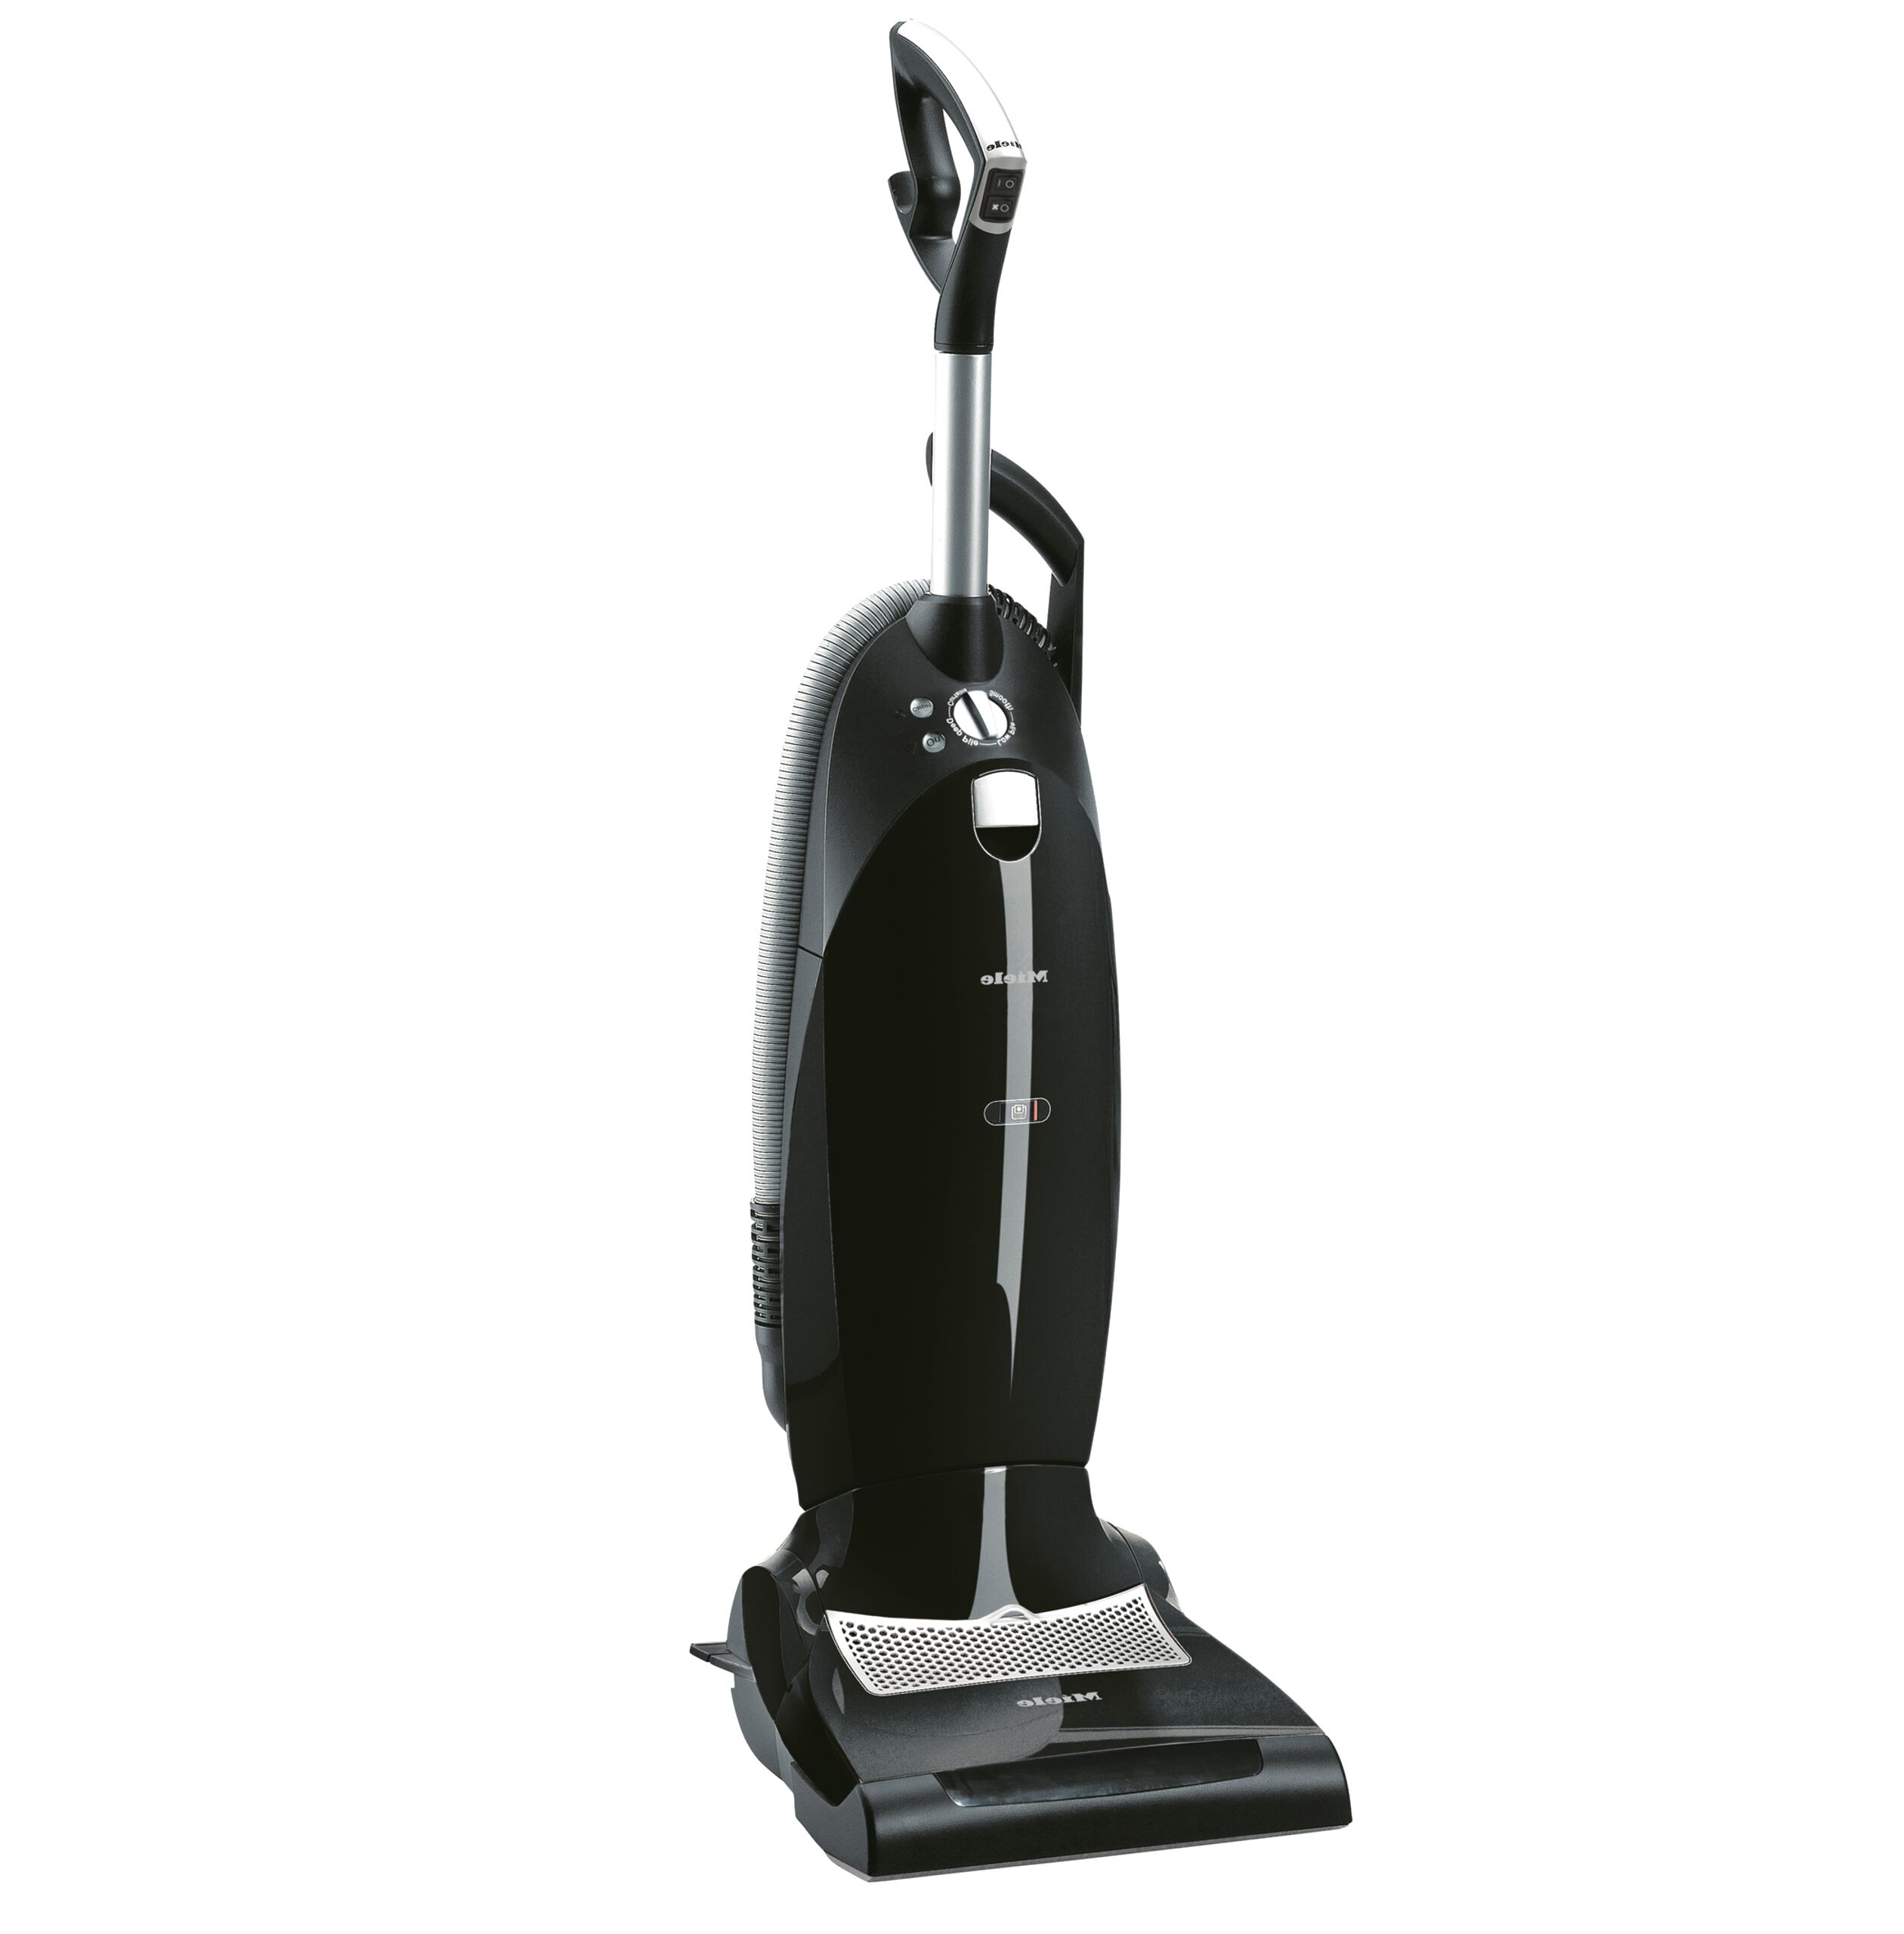 miele upright vacuum cleaner for sale